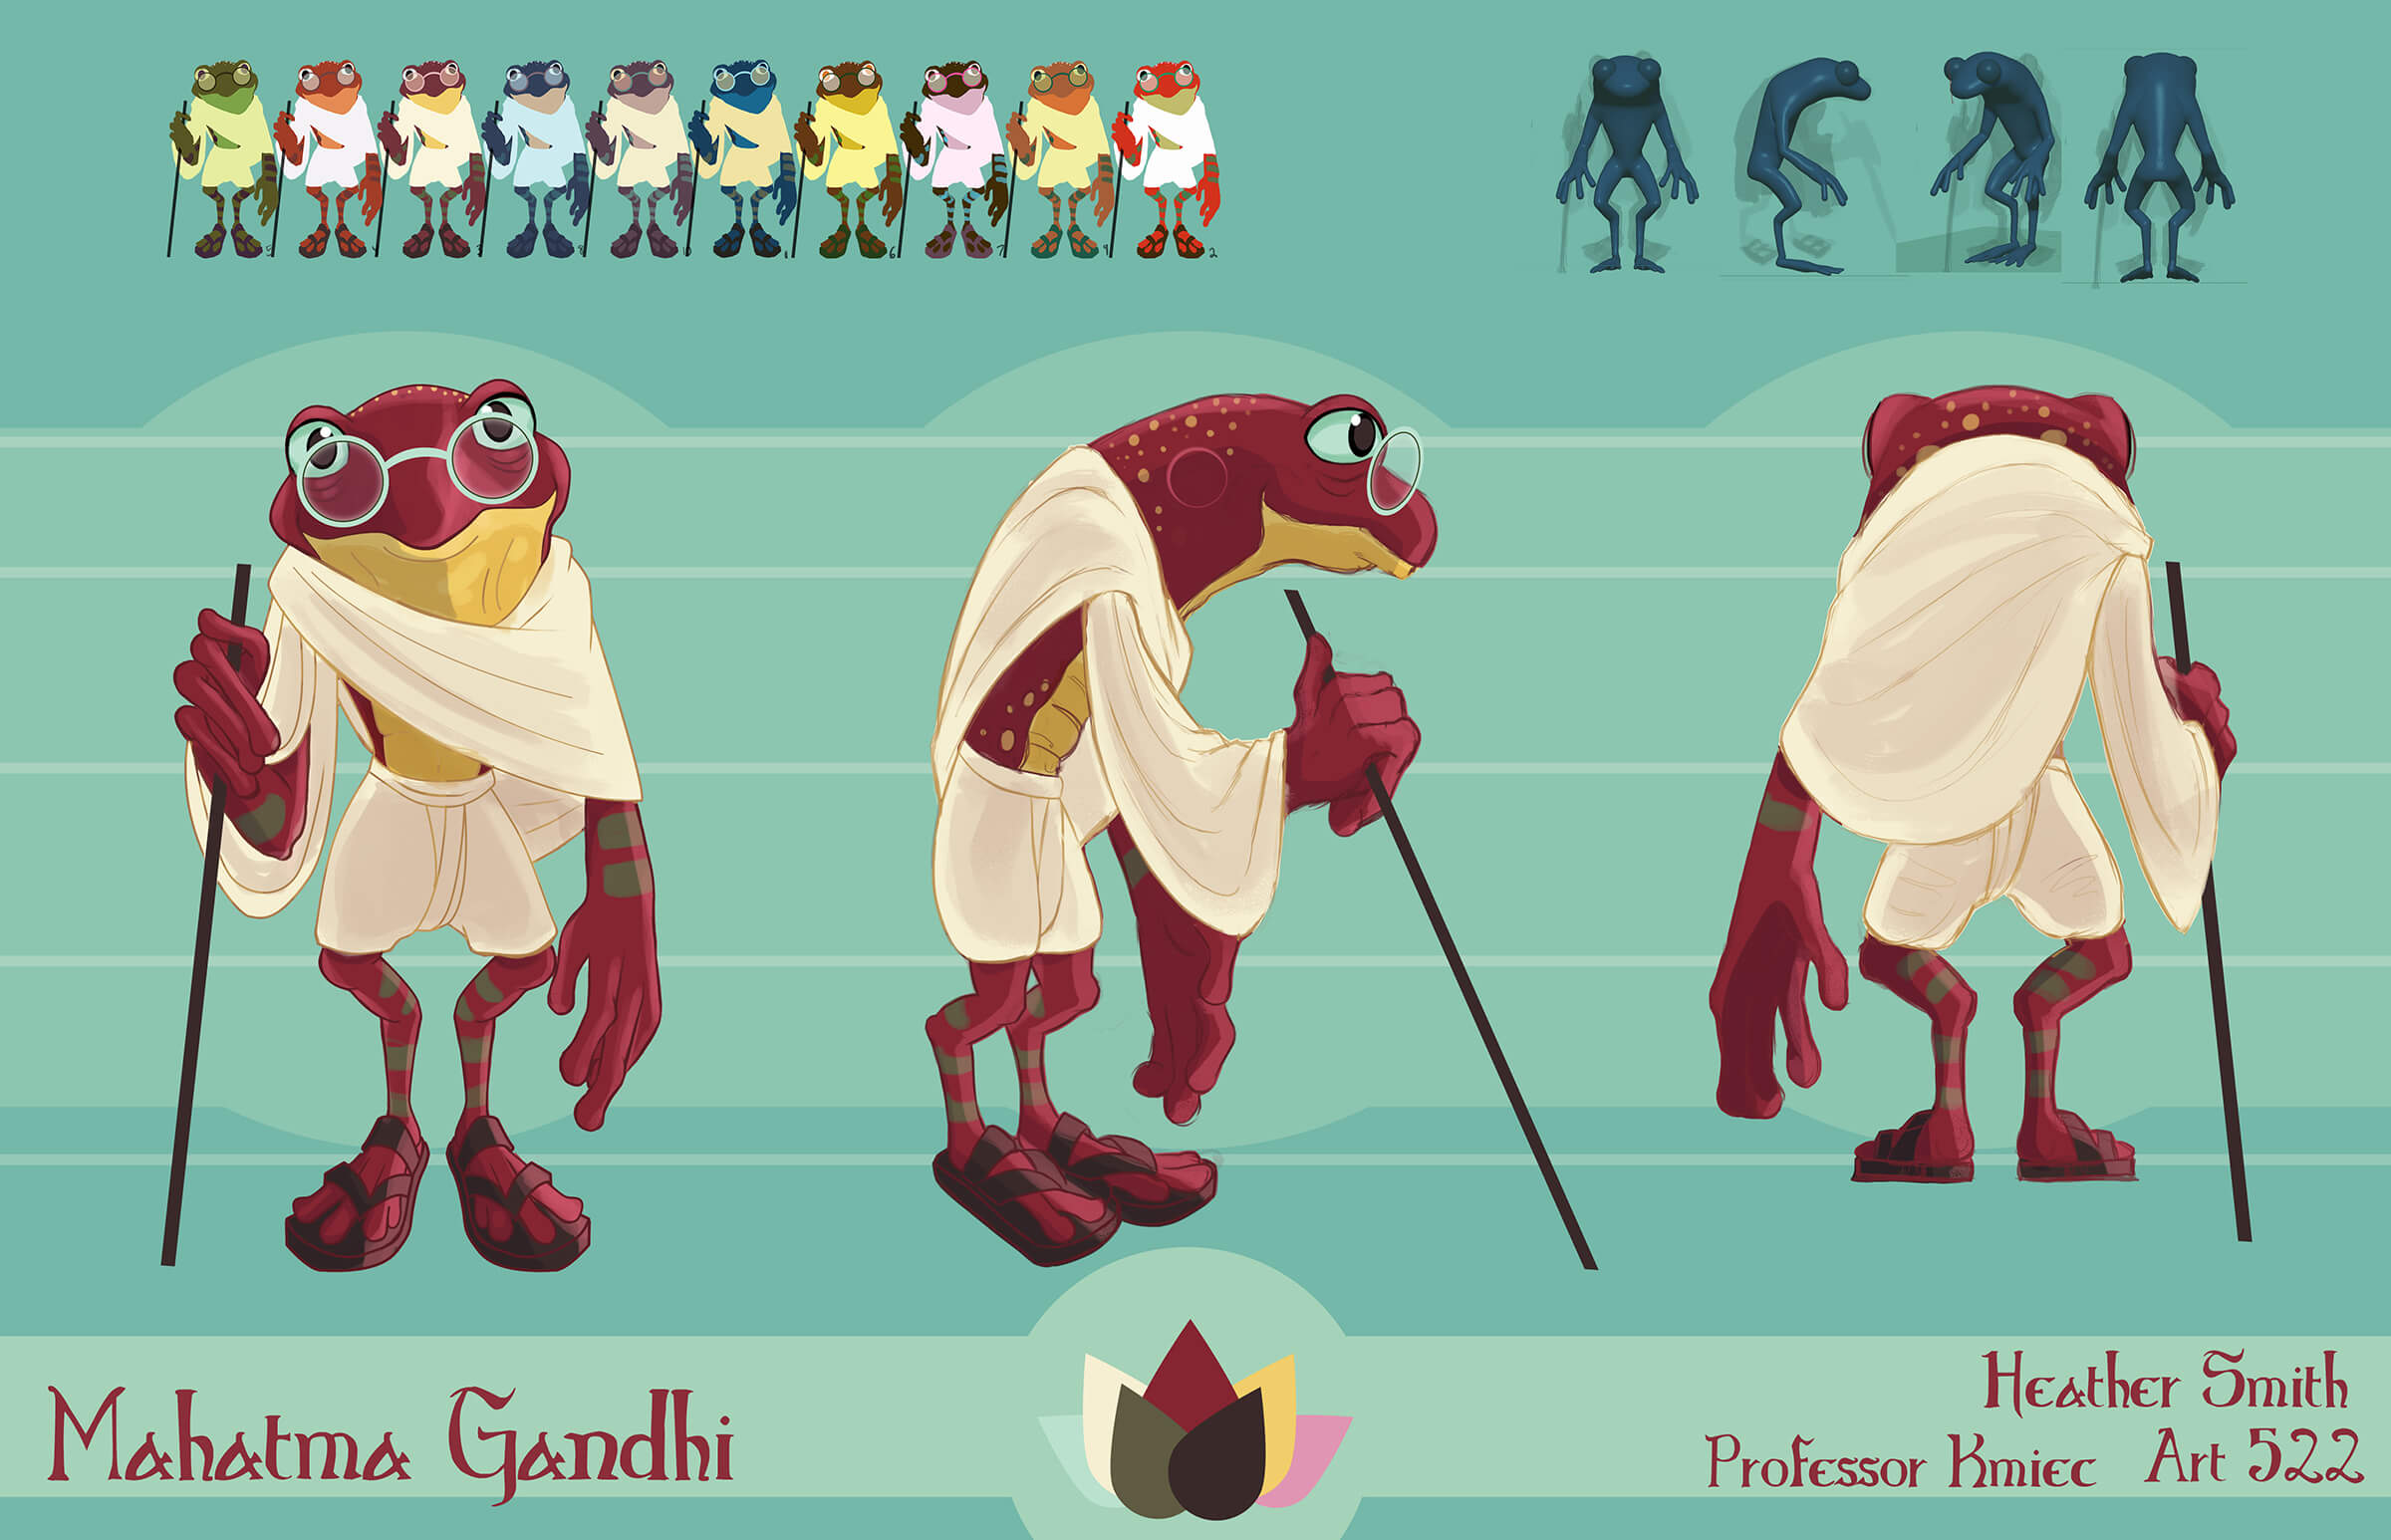 computer-generated 3D model of a frog mahatma gandhi holding a walking stick